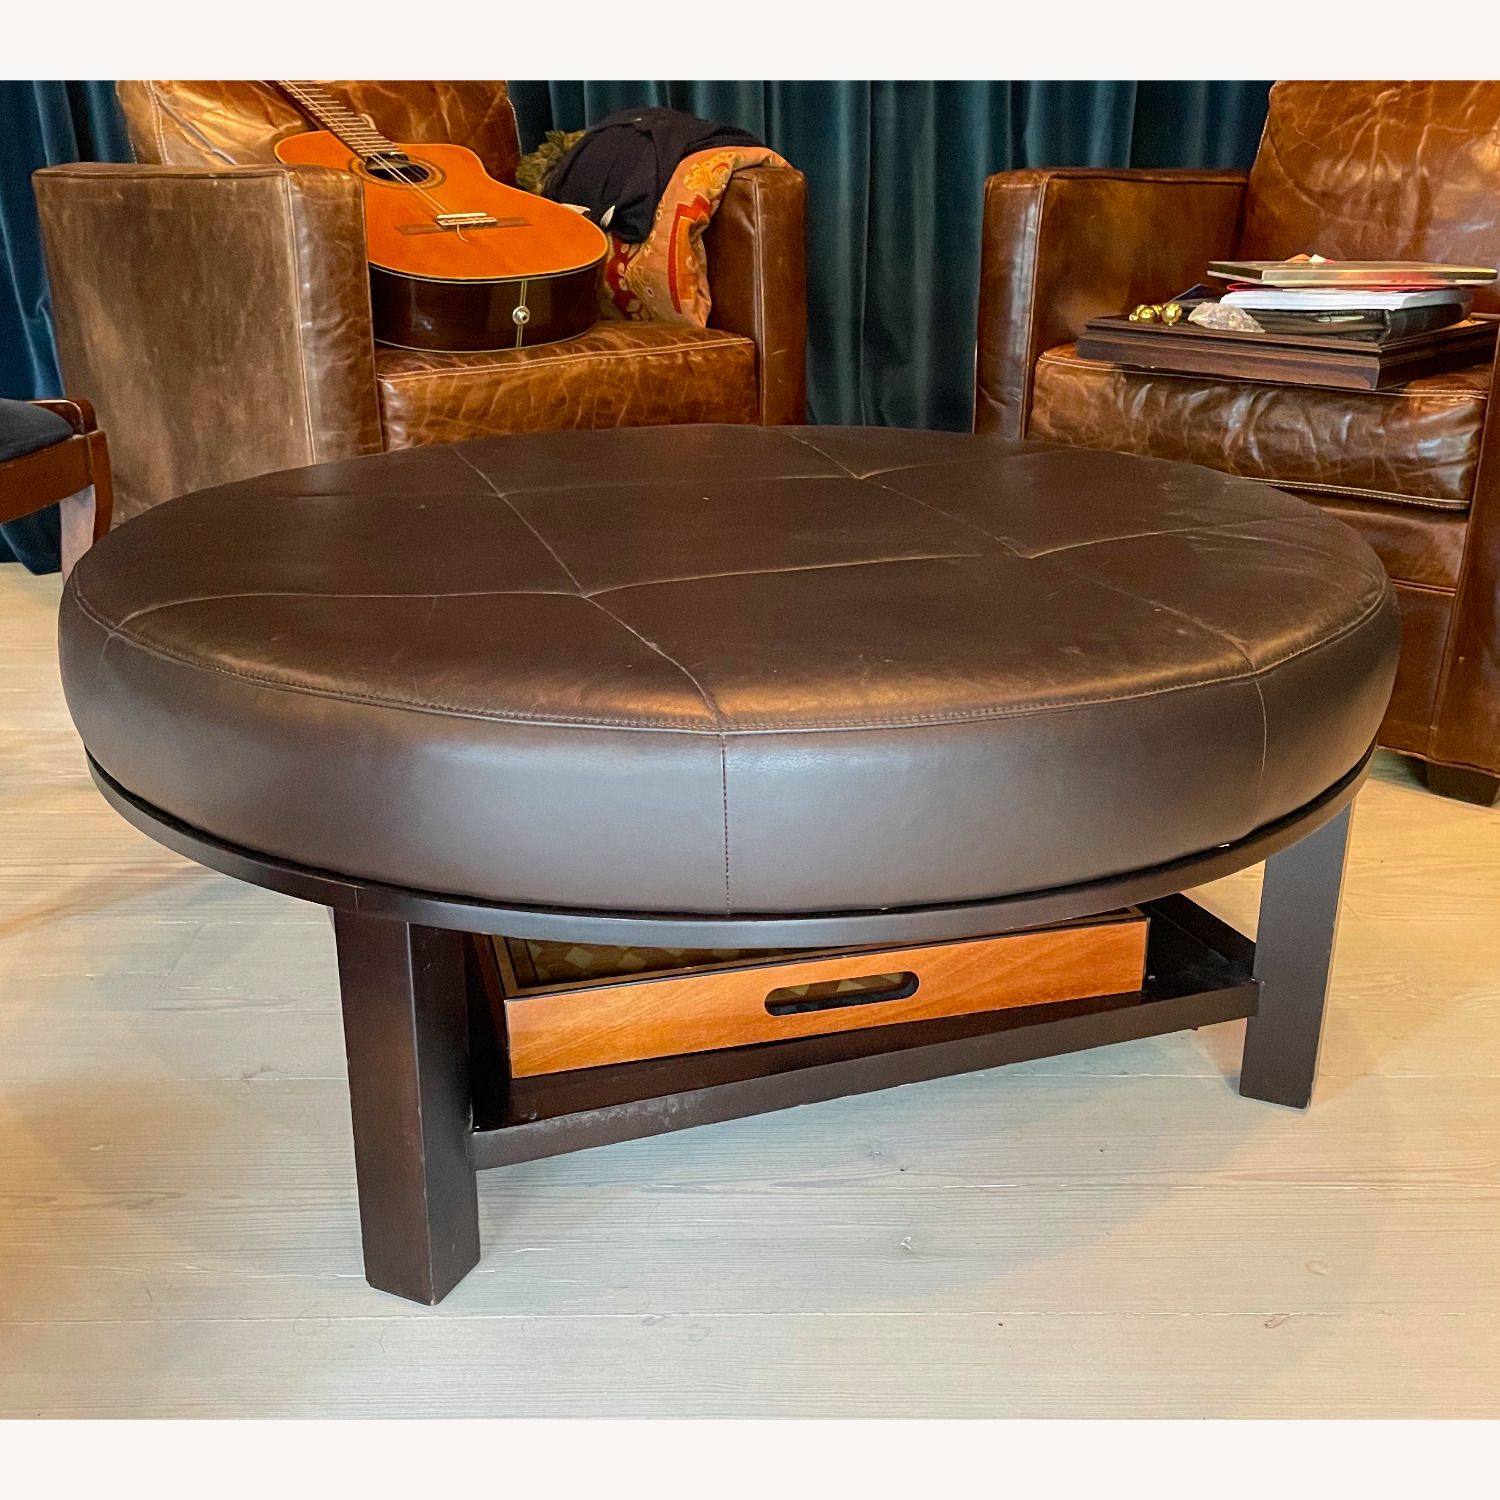 Leather Round Ottoman Table - image-0